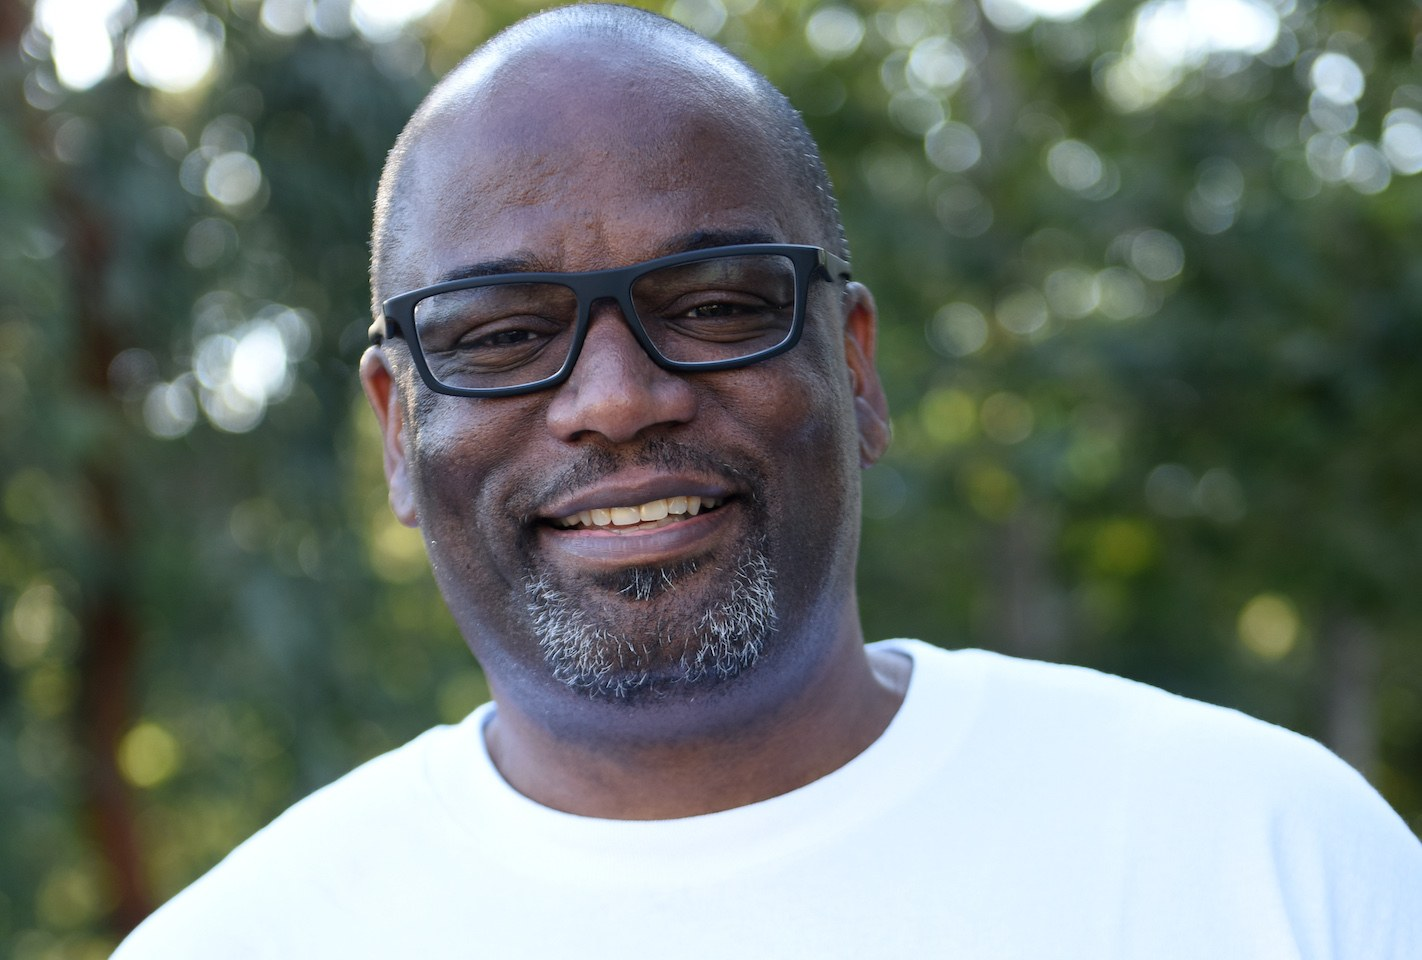 Michigan's Only HBCU To Reopen With Help From Former Nike, Air Jordan Designer Dr. D'Wayne Edwards